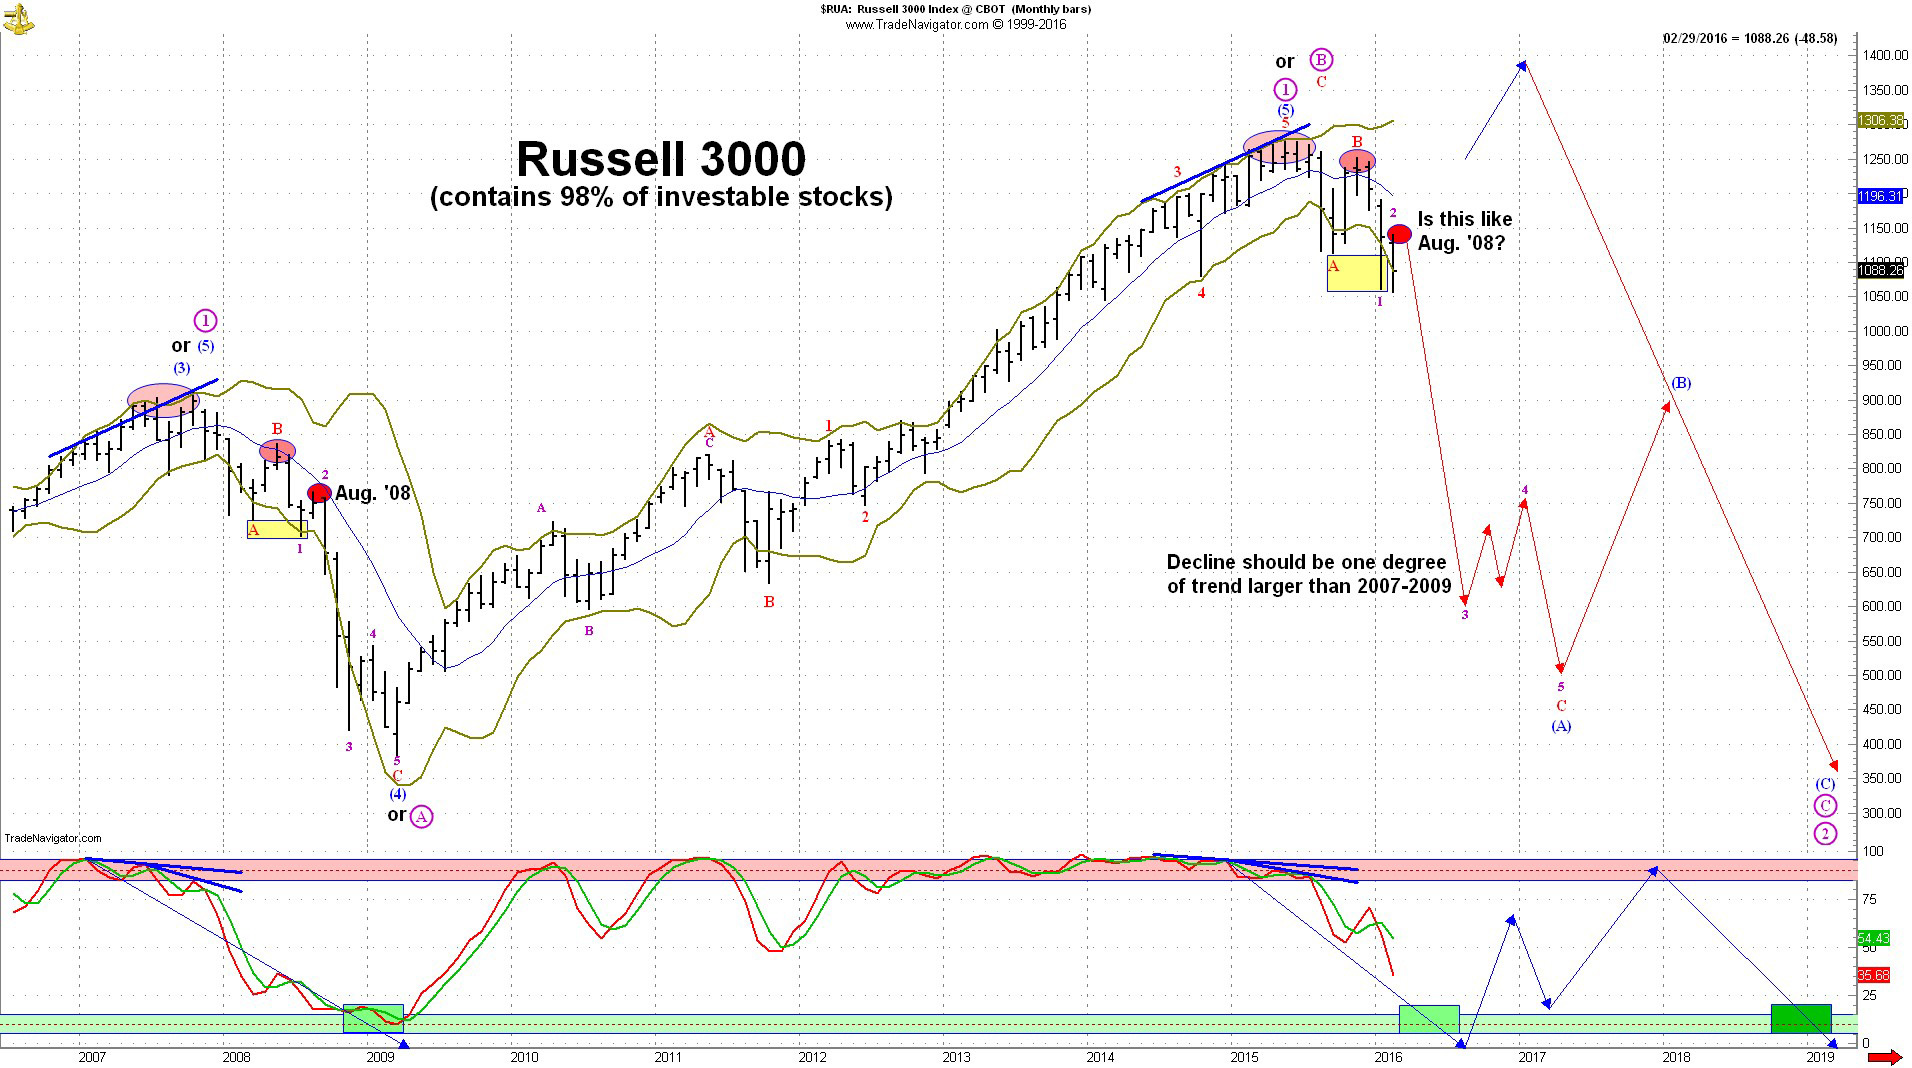 Russell 3000 symbol images symbol and sign ideas why its august 2008 all over again for the stock market thestreet click here to see buycottarizona Choice Image